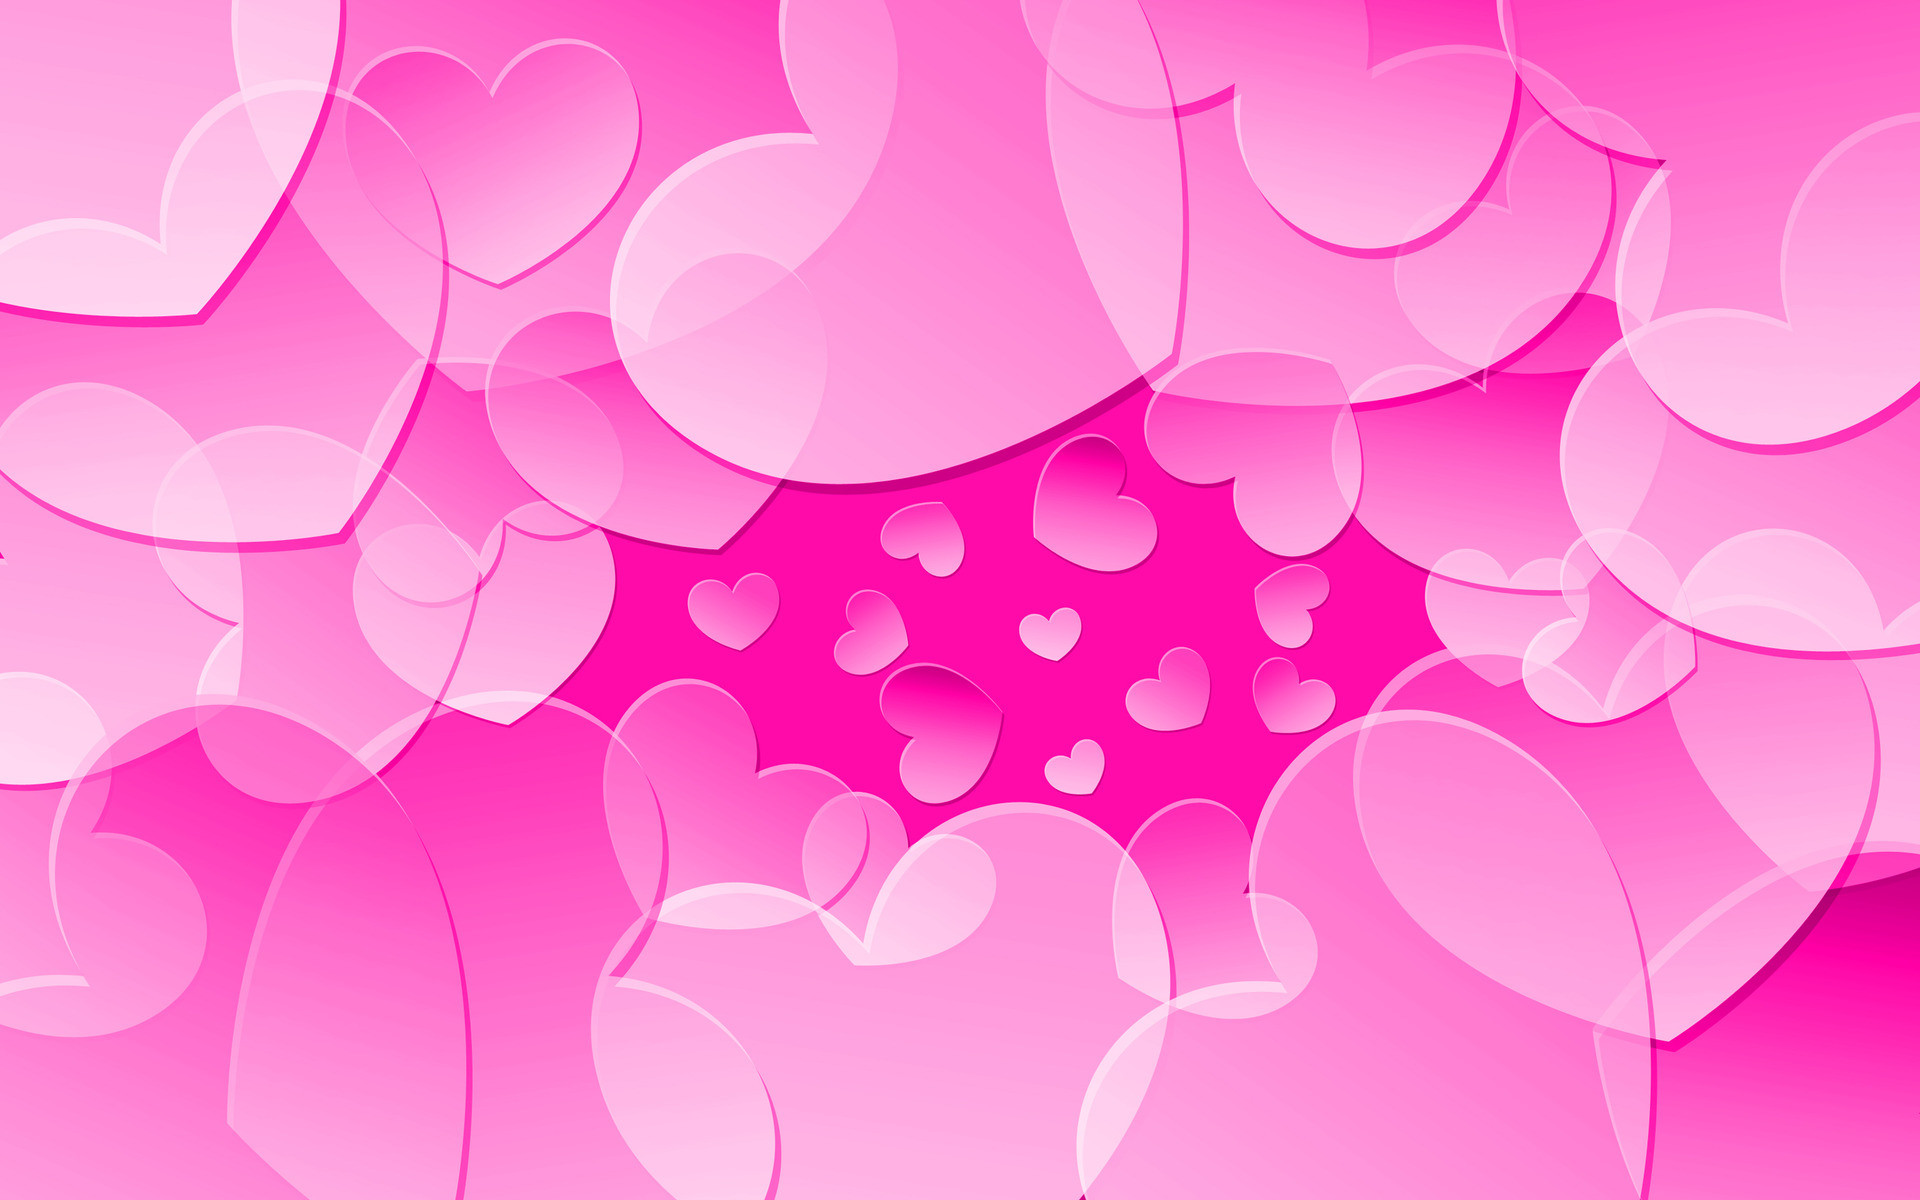 Beautiful Love Heart Wallpapers TechLovers l Web Design Hart Image  Wallpapers Wallpapers)